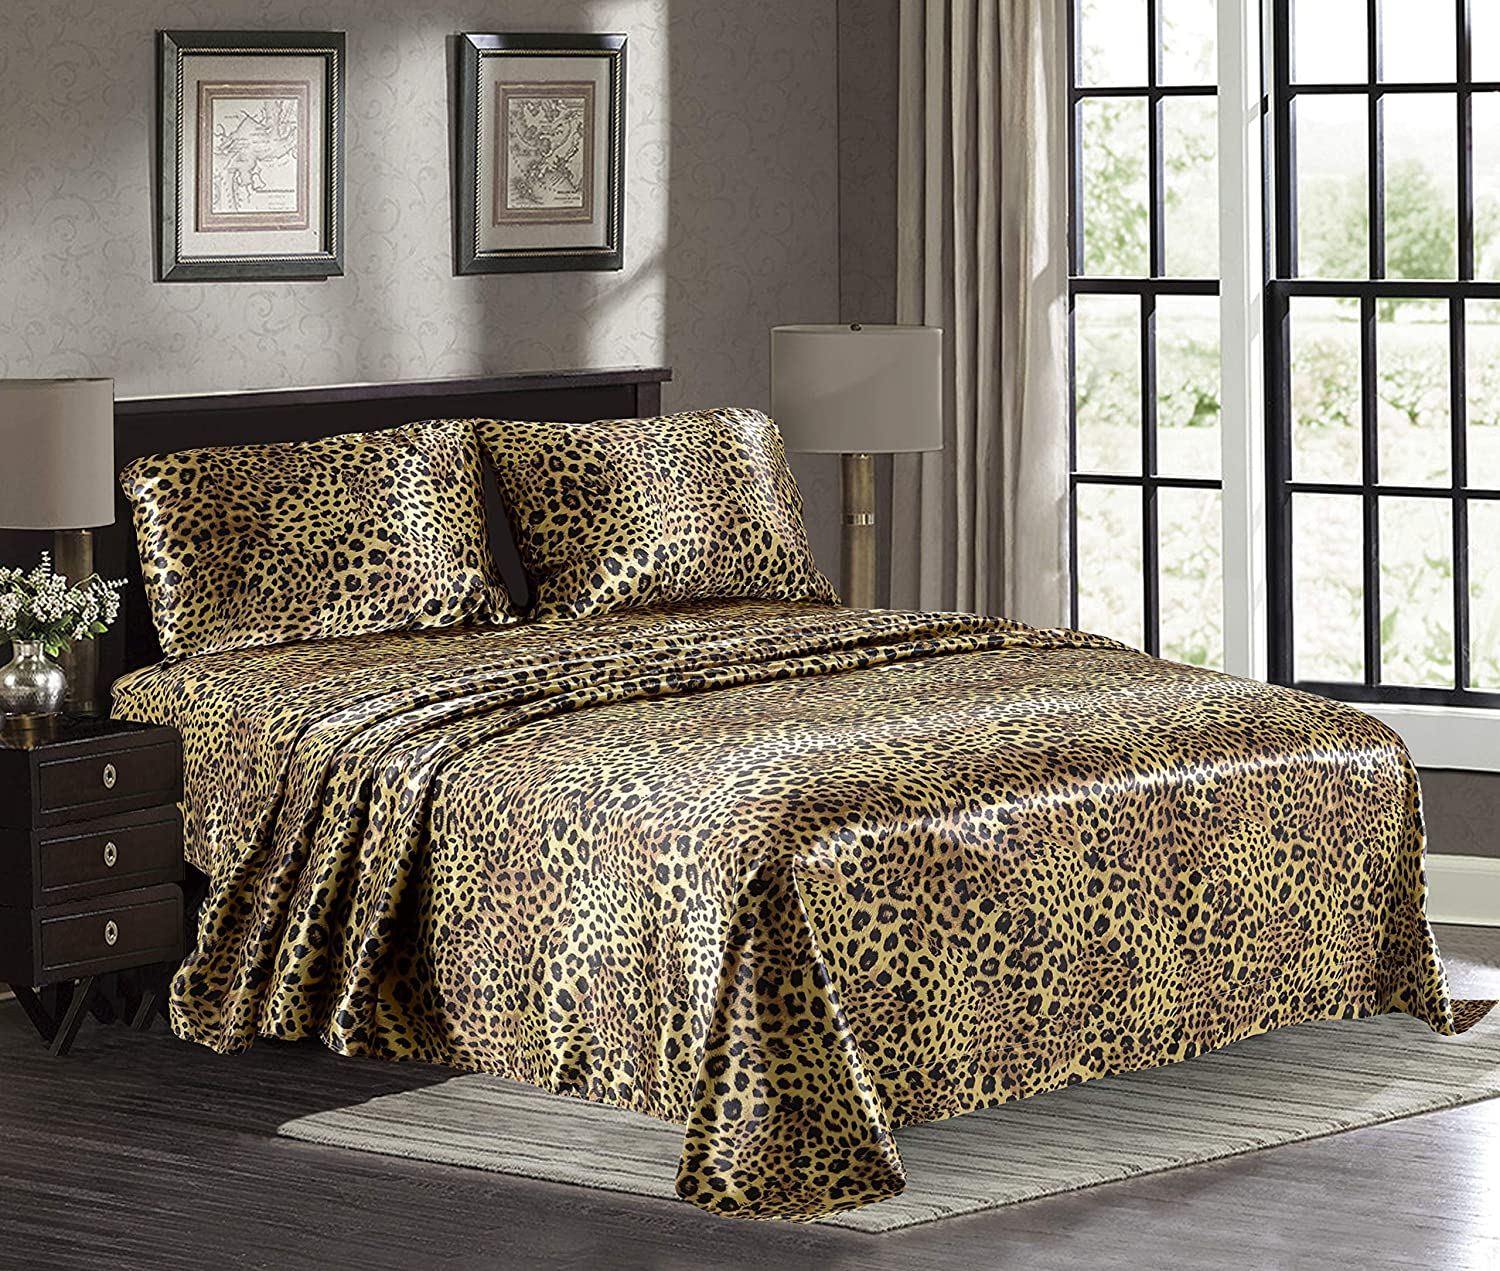 Satin High quality new Sheets Queen 4-Piece Gold Hotel Leopard Luxury Be Silky 2021 autumn and winter new